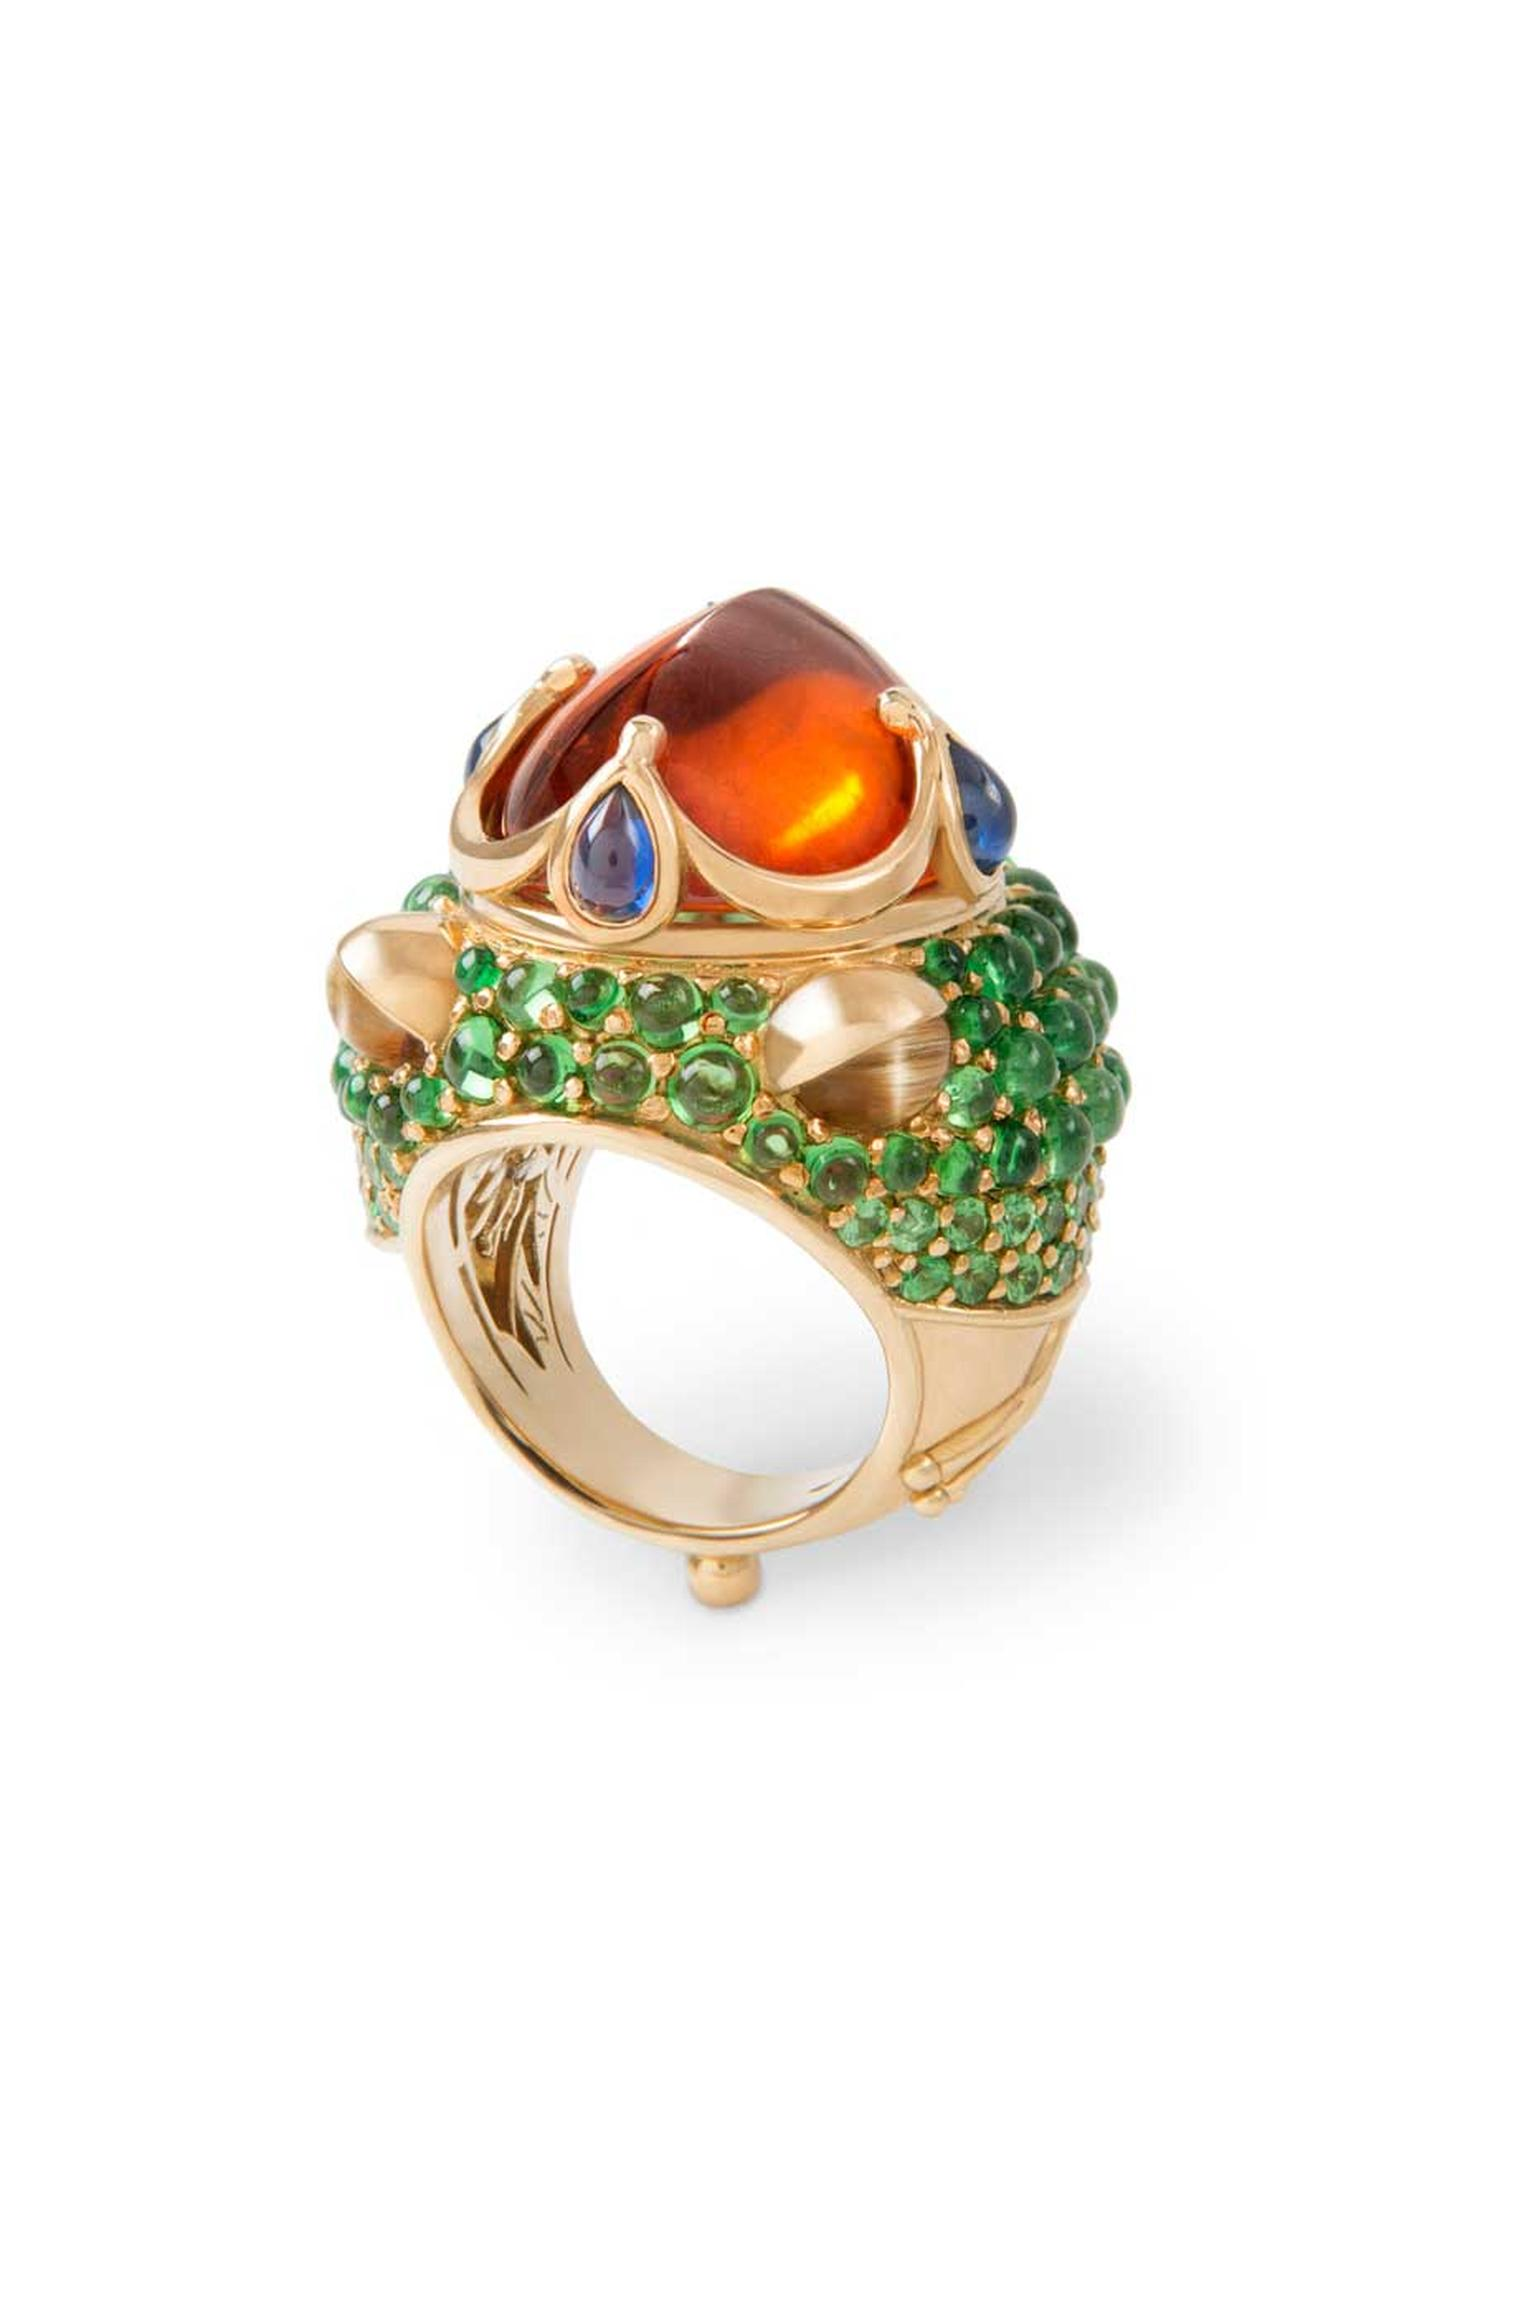 Temple St. Clair's Mythical Creatures from the Golden Menagerie collection contains 9 pieces, including this Frog Prince ring set with a mandarin garnet, tsavorites, sapphires and cat's eyes.